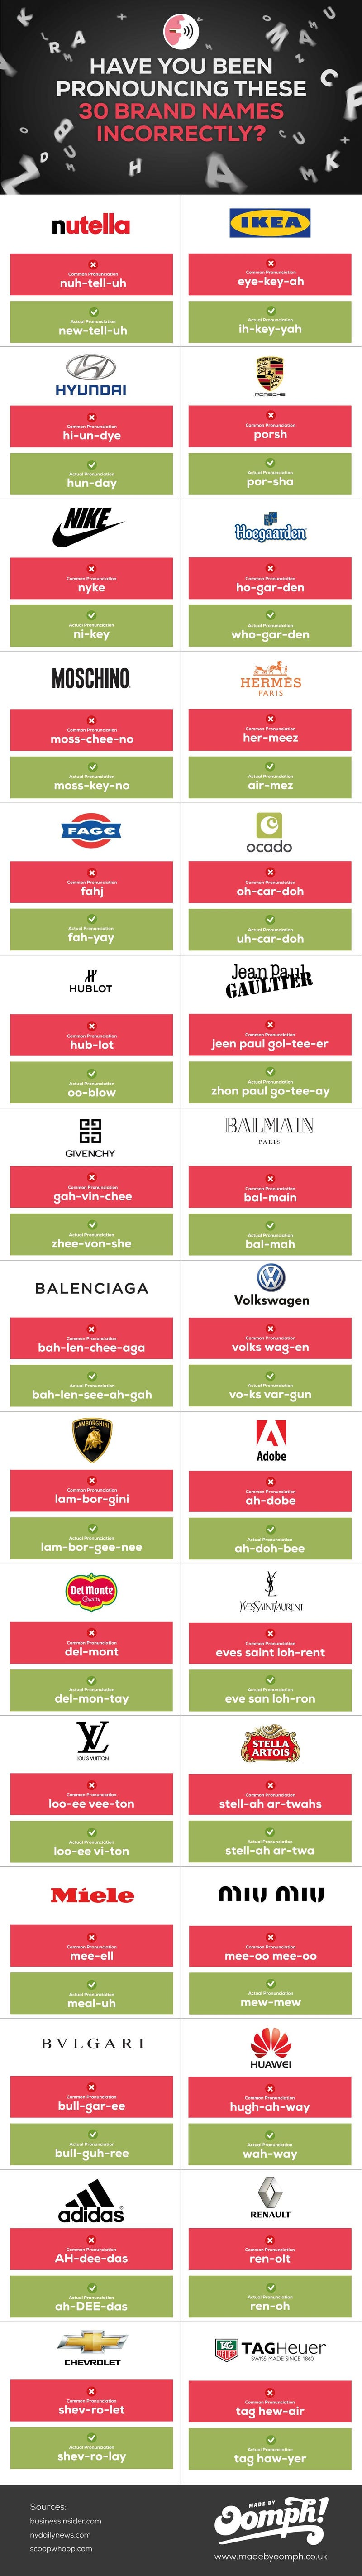 Brand Names You Might Be Pronouncing Incorrectly